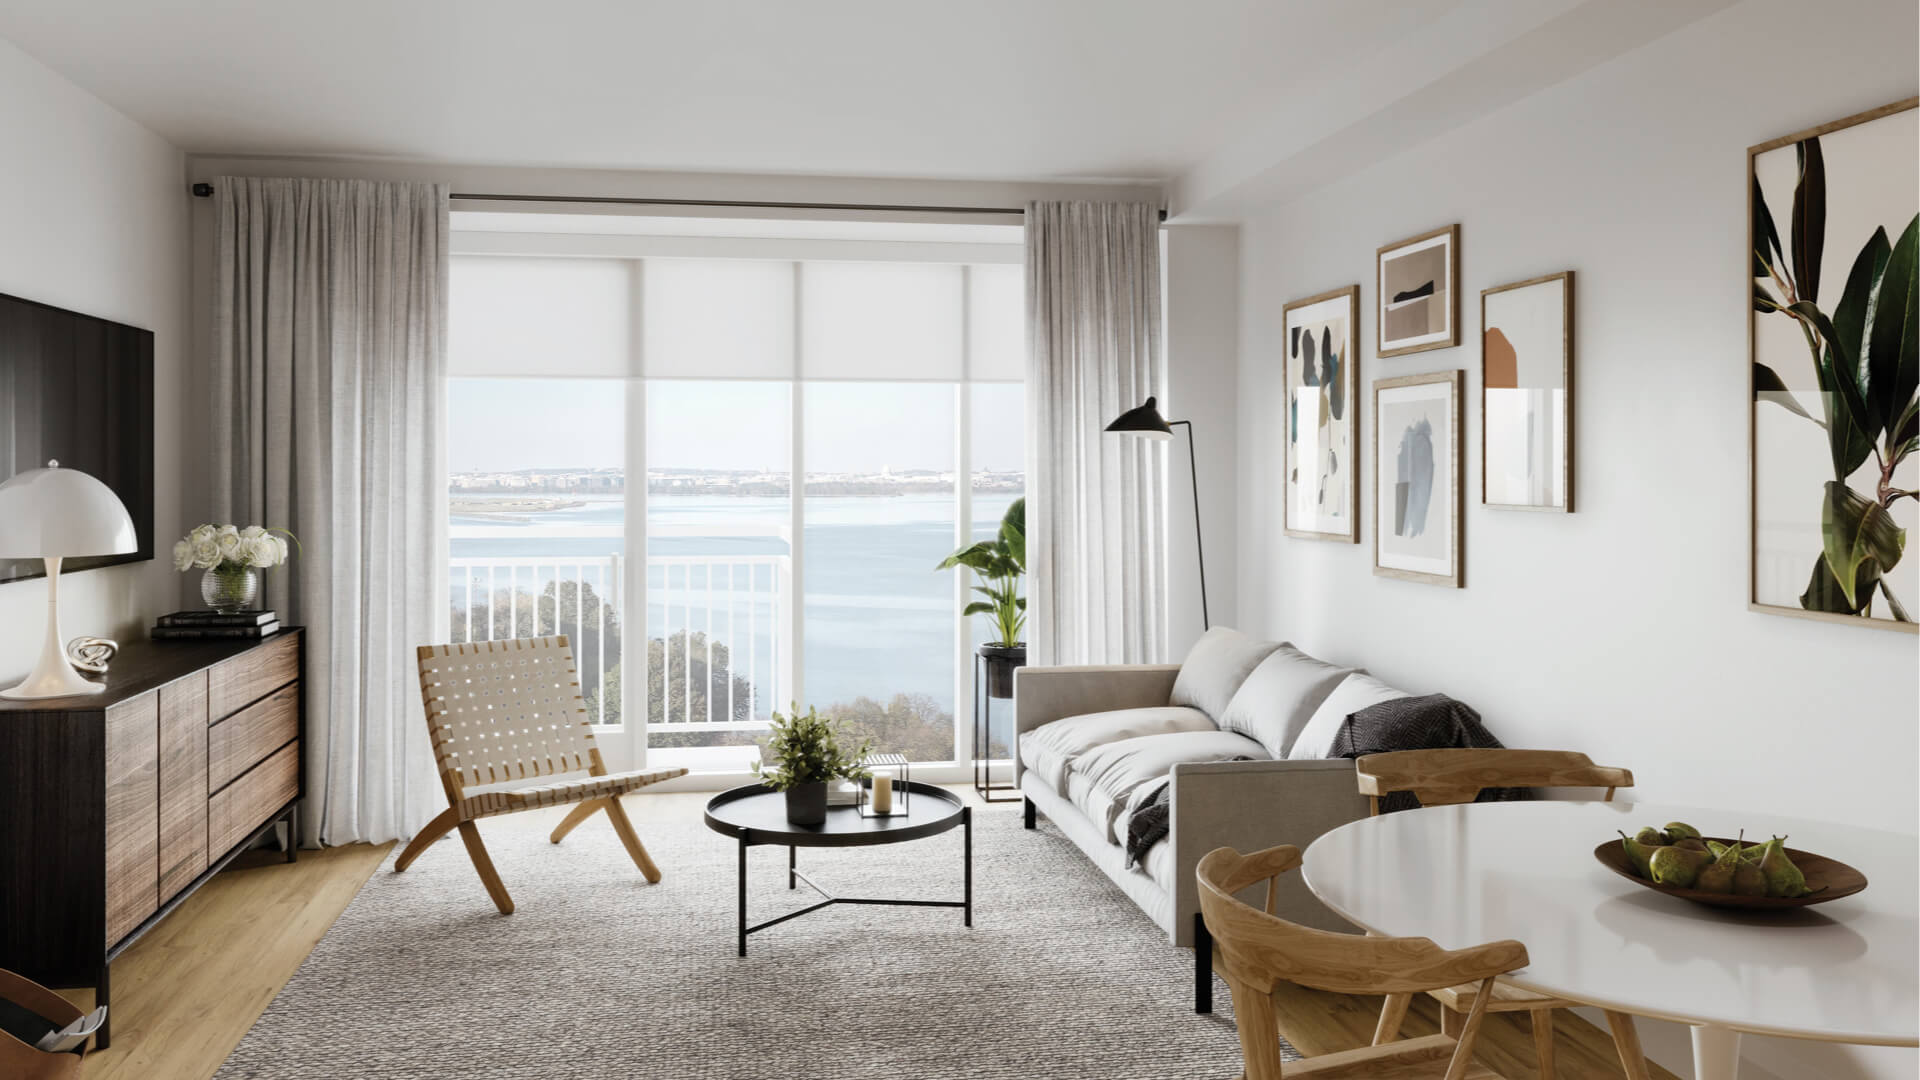 Condo residence at Venue with white walls and a view of the riverfront